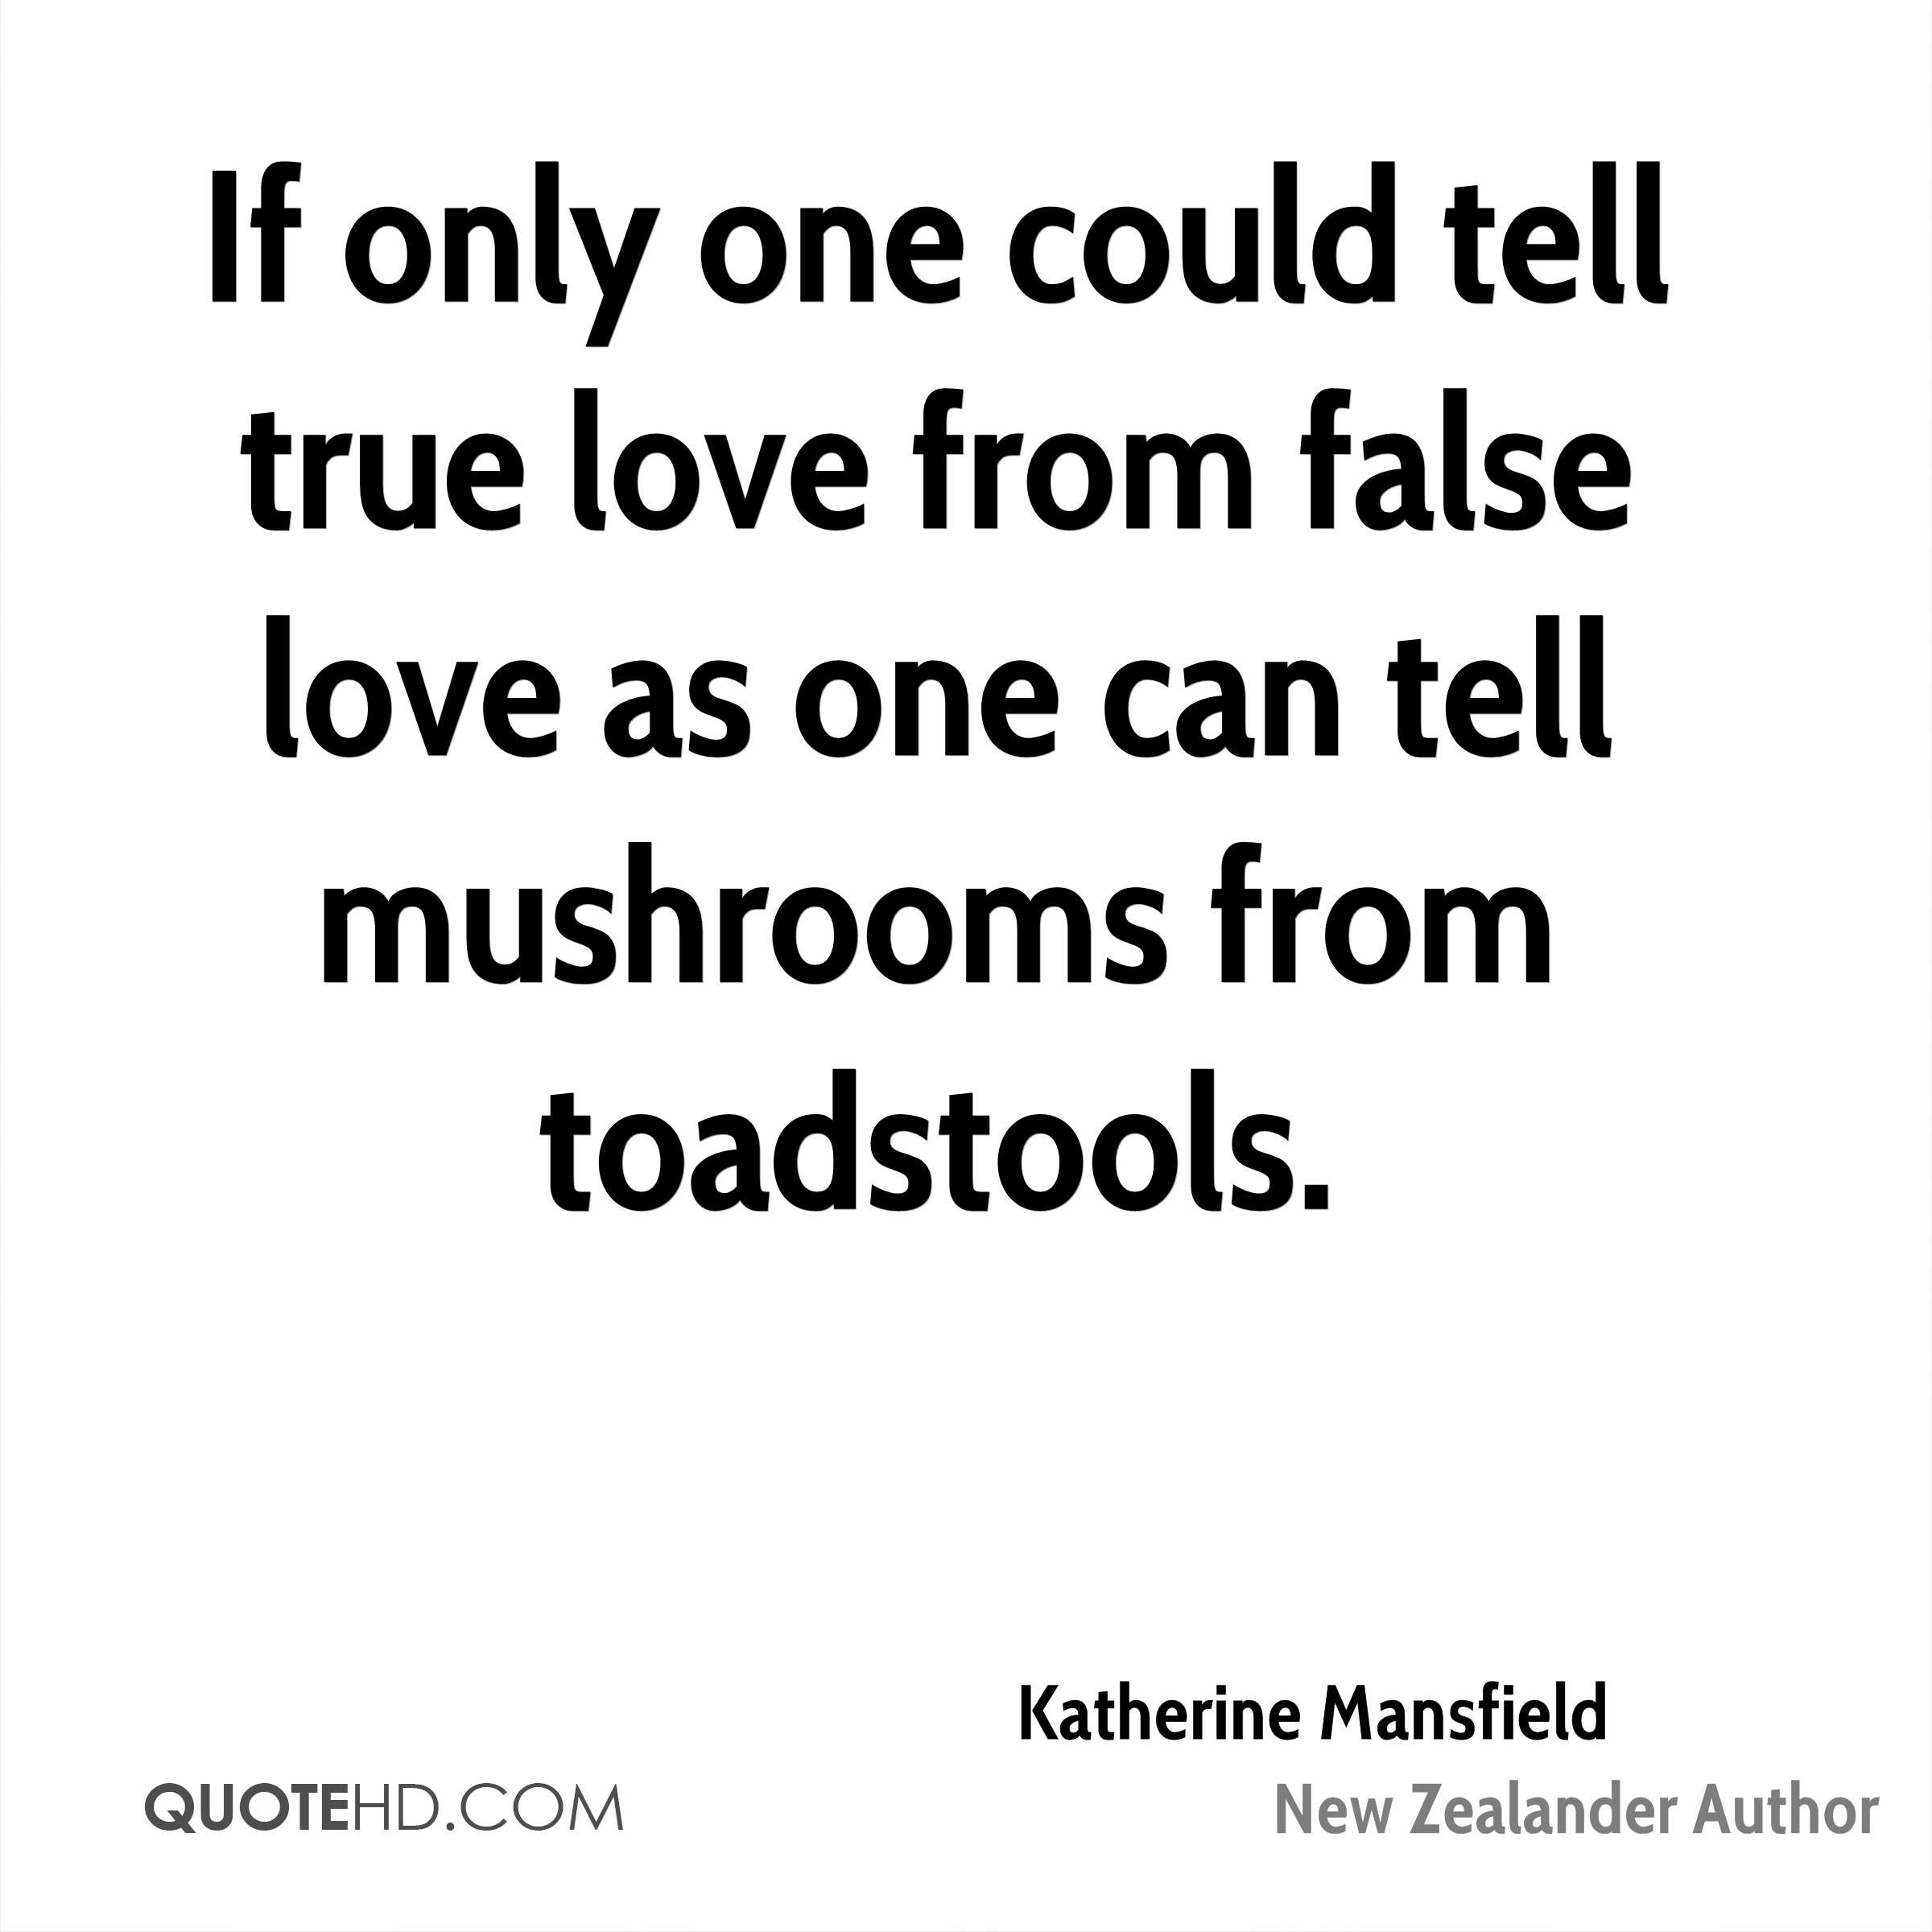 If only one could tell true love from false love as one can tell mushrooms from